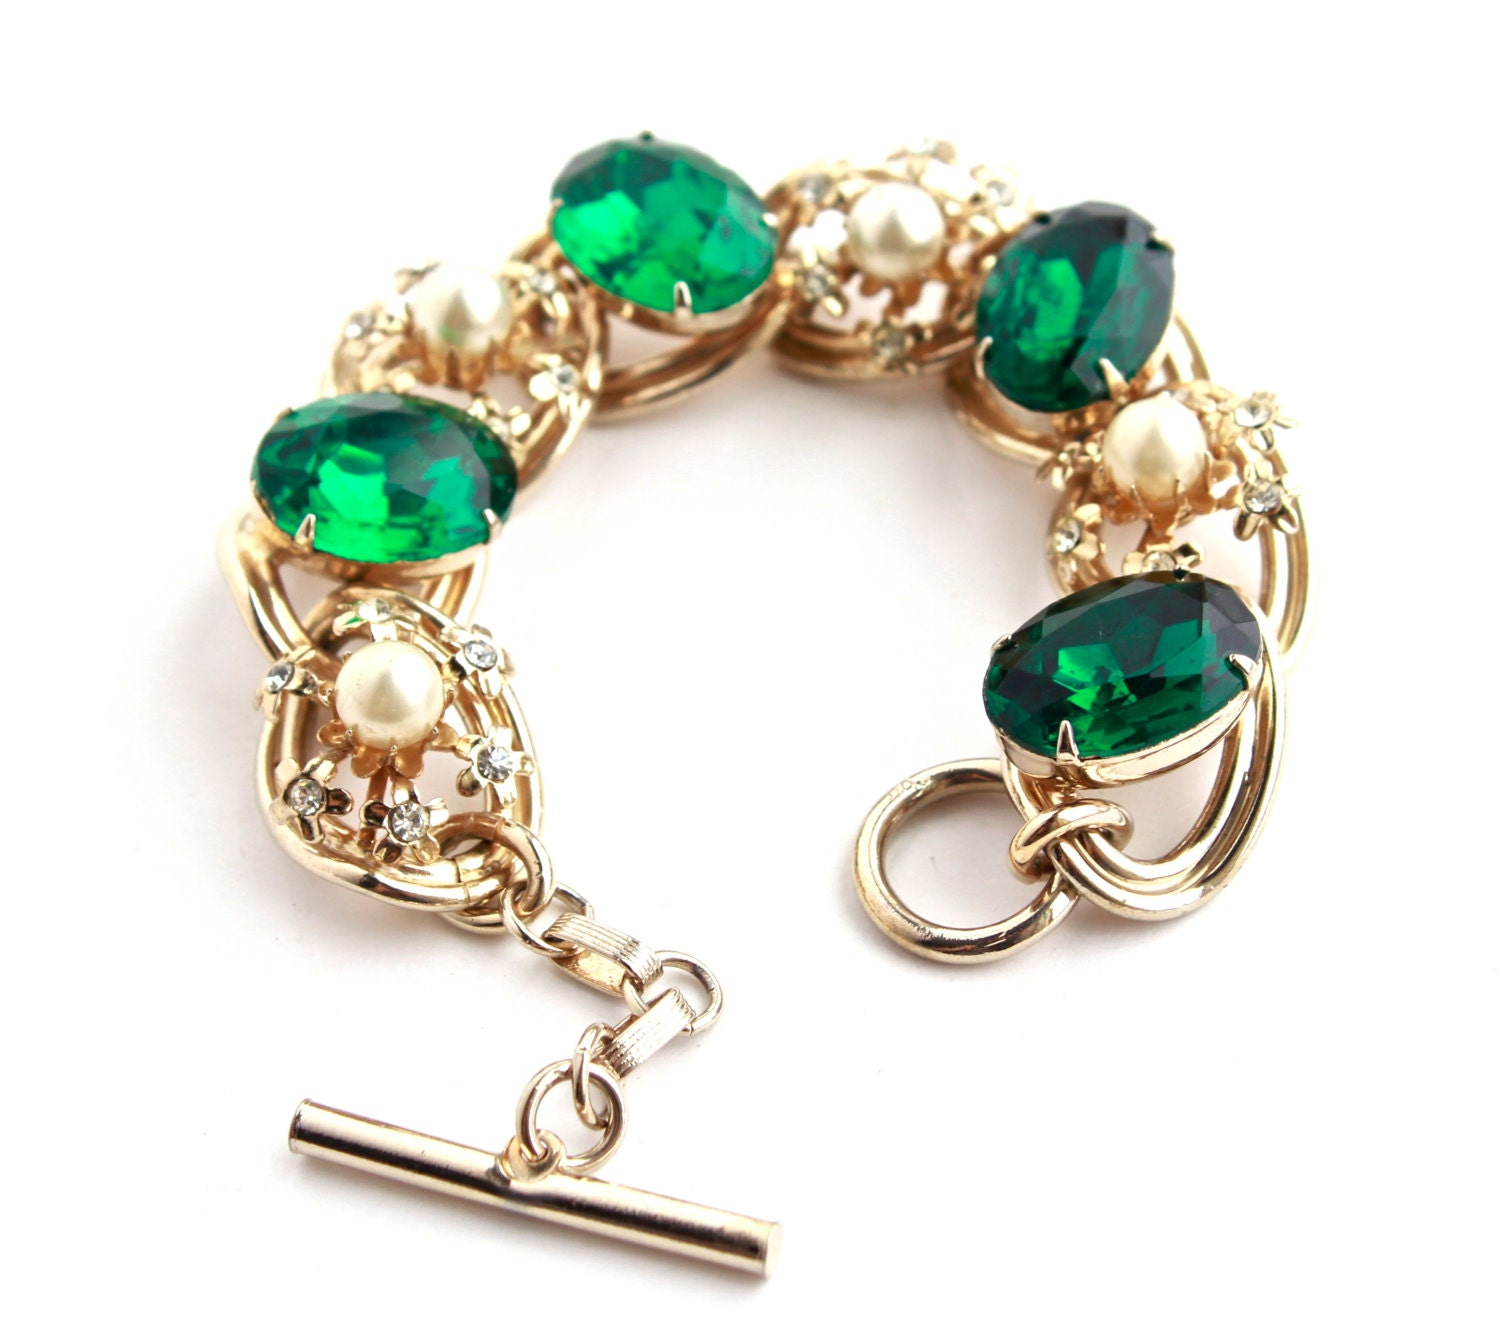 how to clean vintage metal clasp that is green